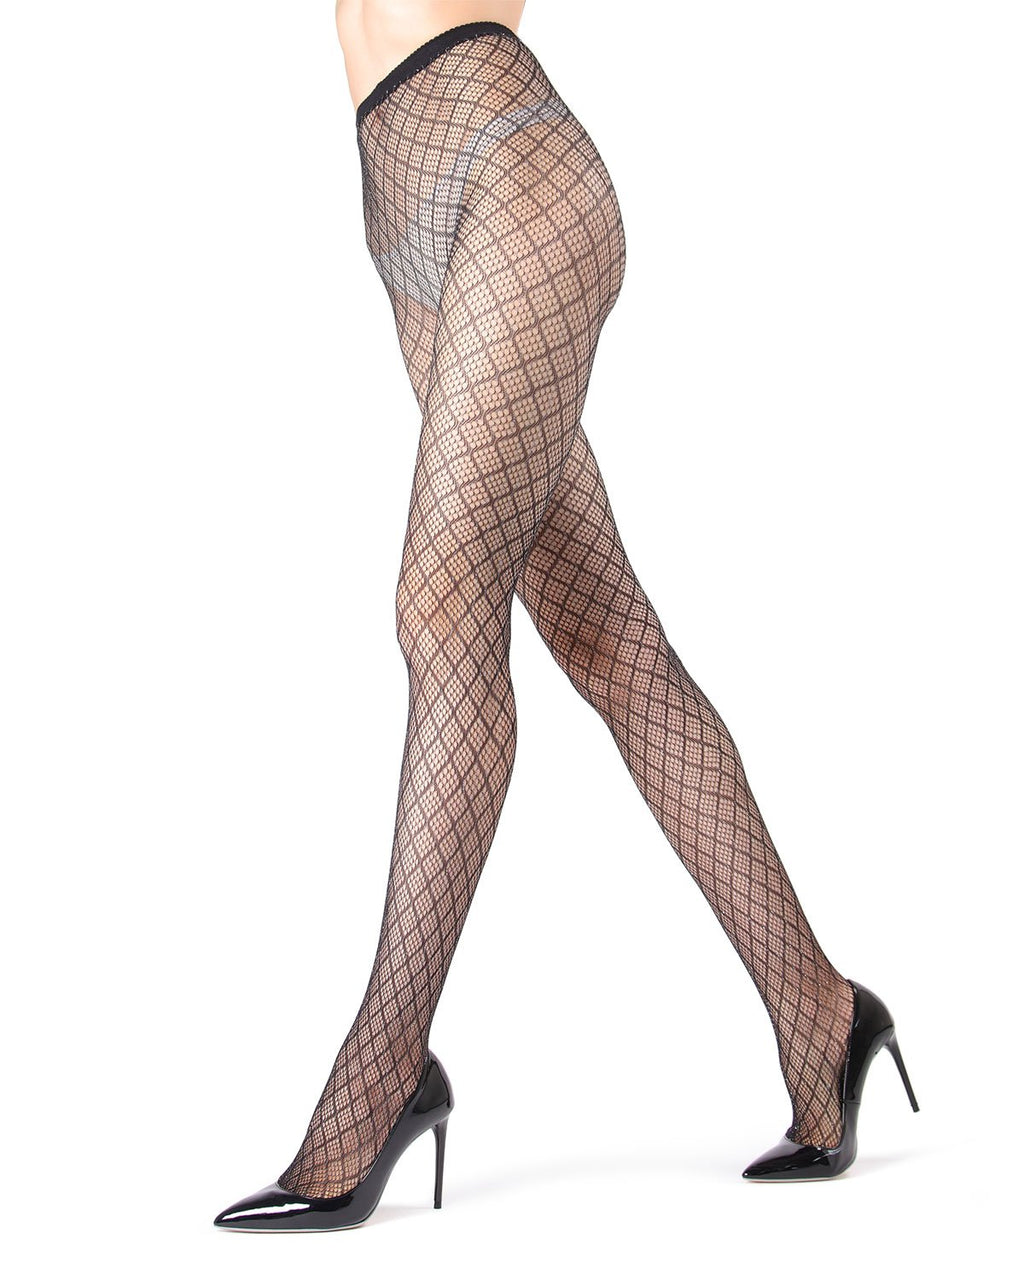 MeMoi | Black/Silver Infinite Diamond Lurex Net Tights | Women's Tights